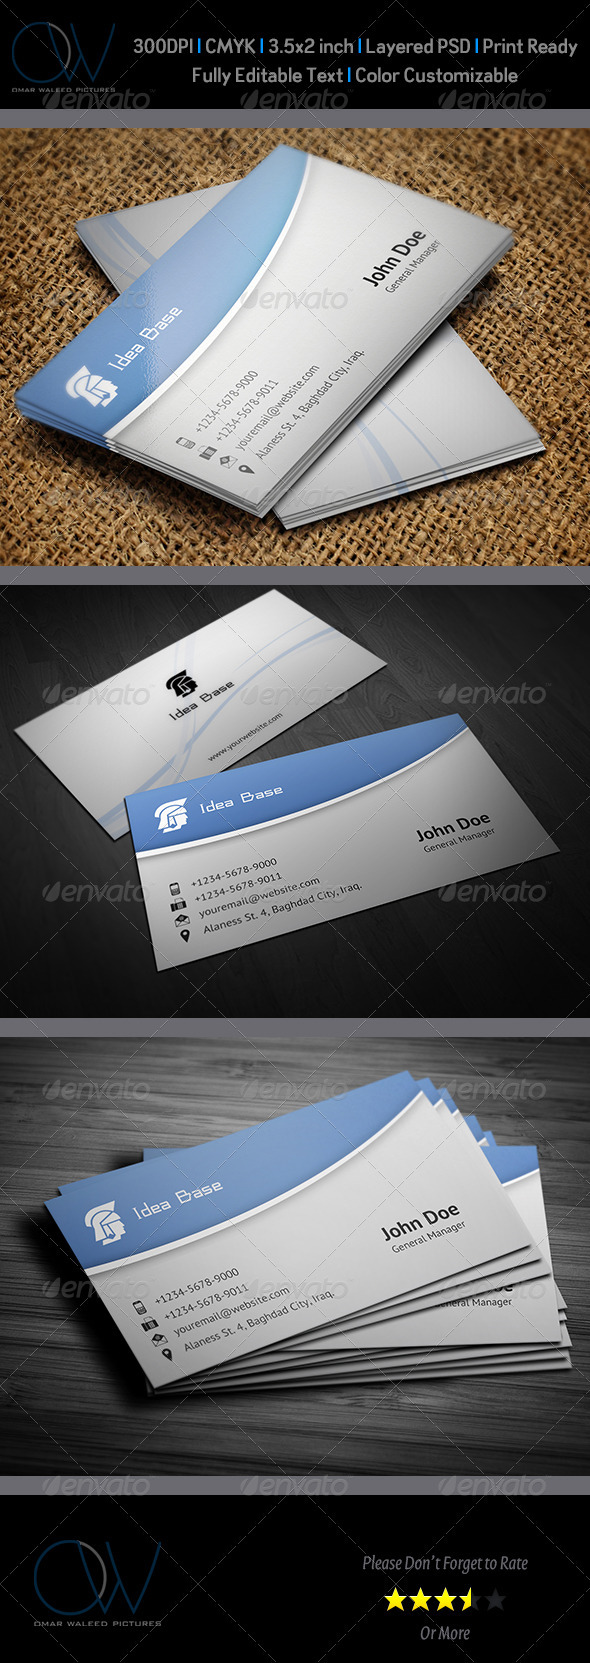 Corporate Business Card Vol.3 - Corporate Business Cards